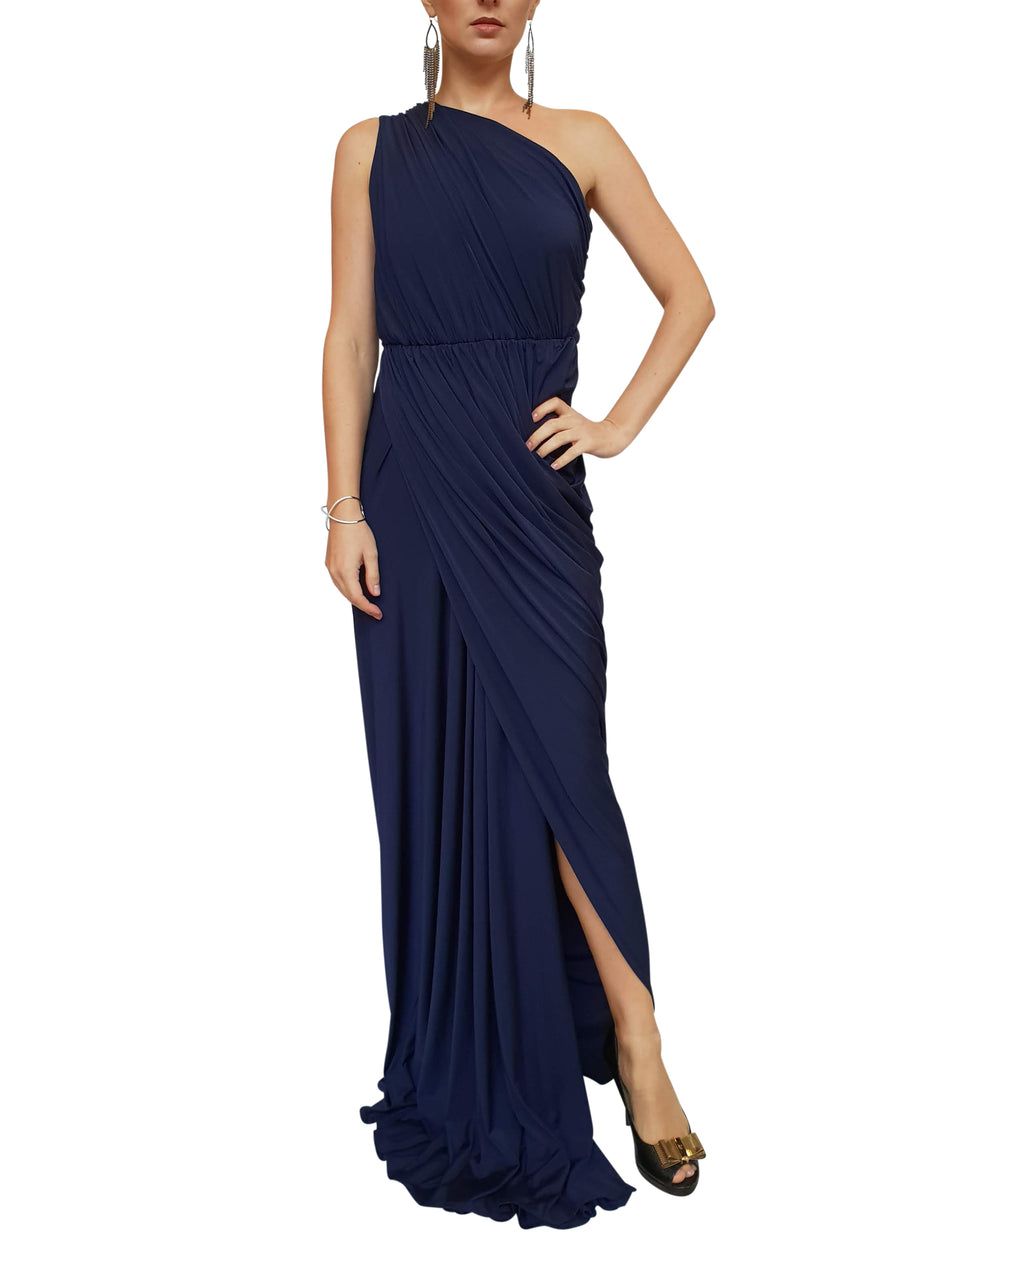 Asymmetric One-Shoulder Grecian Gown